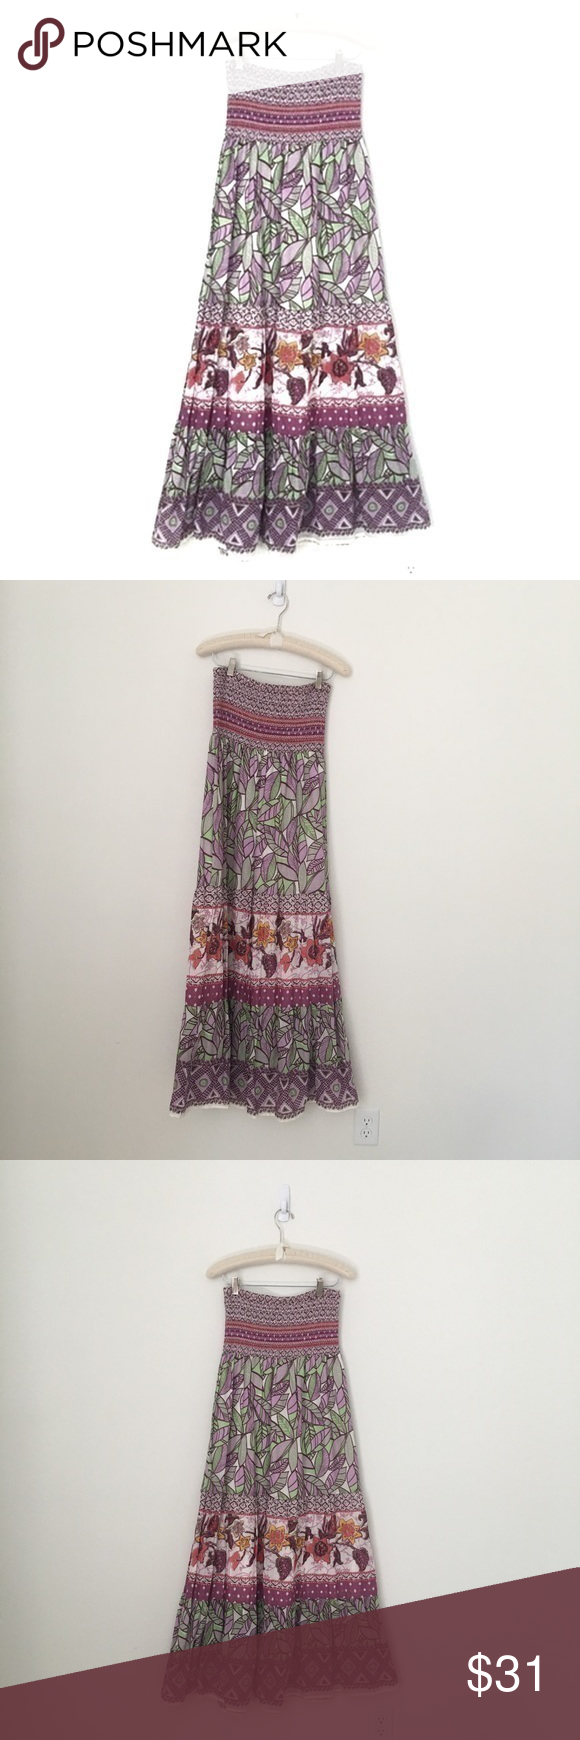 Forever maxi dress strapless maxi st dresses and maxi dresses